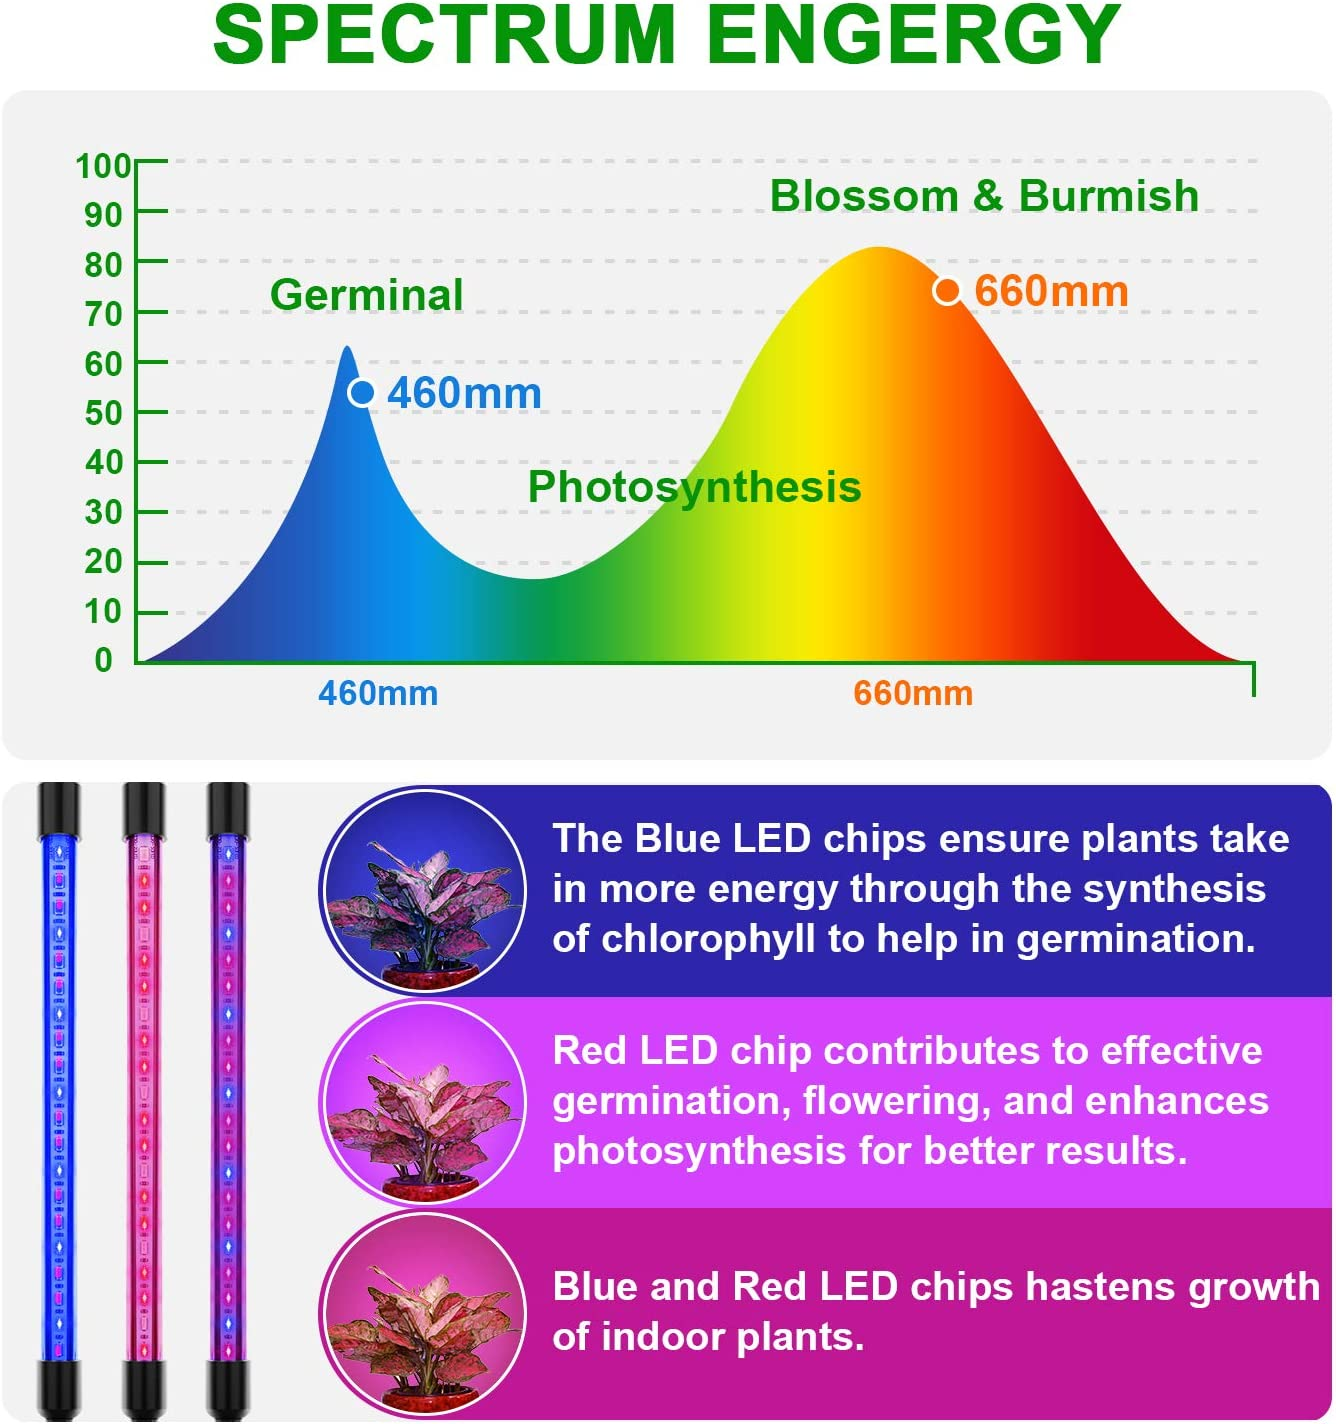 EZORKAS Grow Light, 80W Tri Head Timing 80 LED 9 Dimmable Levels Plant Grow Lights for Indoor Plants with Red Blue Spectrum, Adjustable Gooseneck, 3 9 12H Timer, 3 Switch Modes: Home Improvement